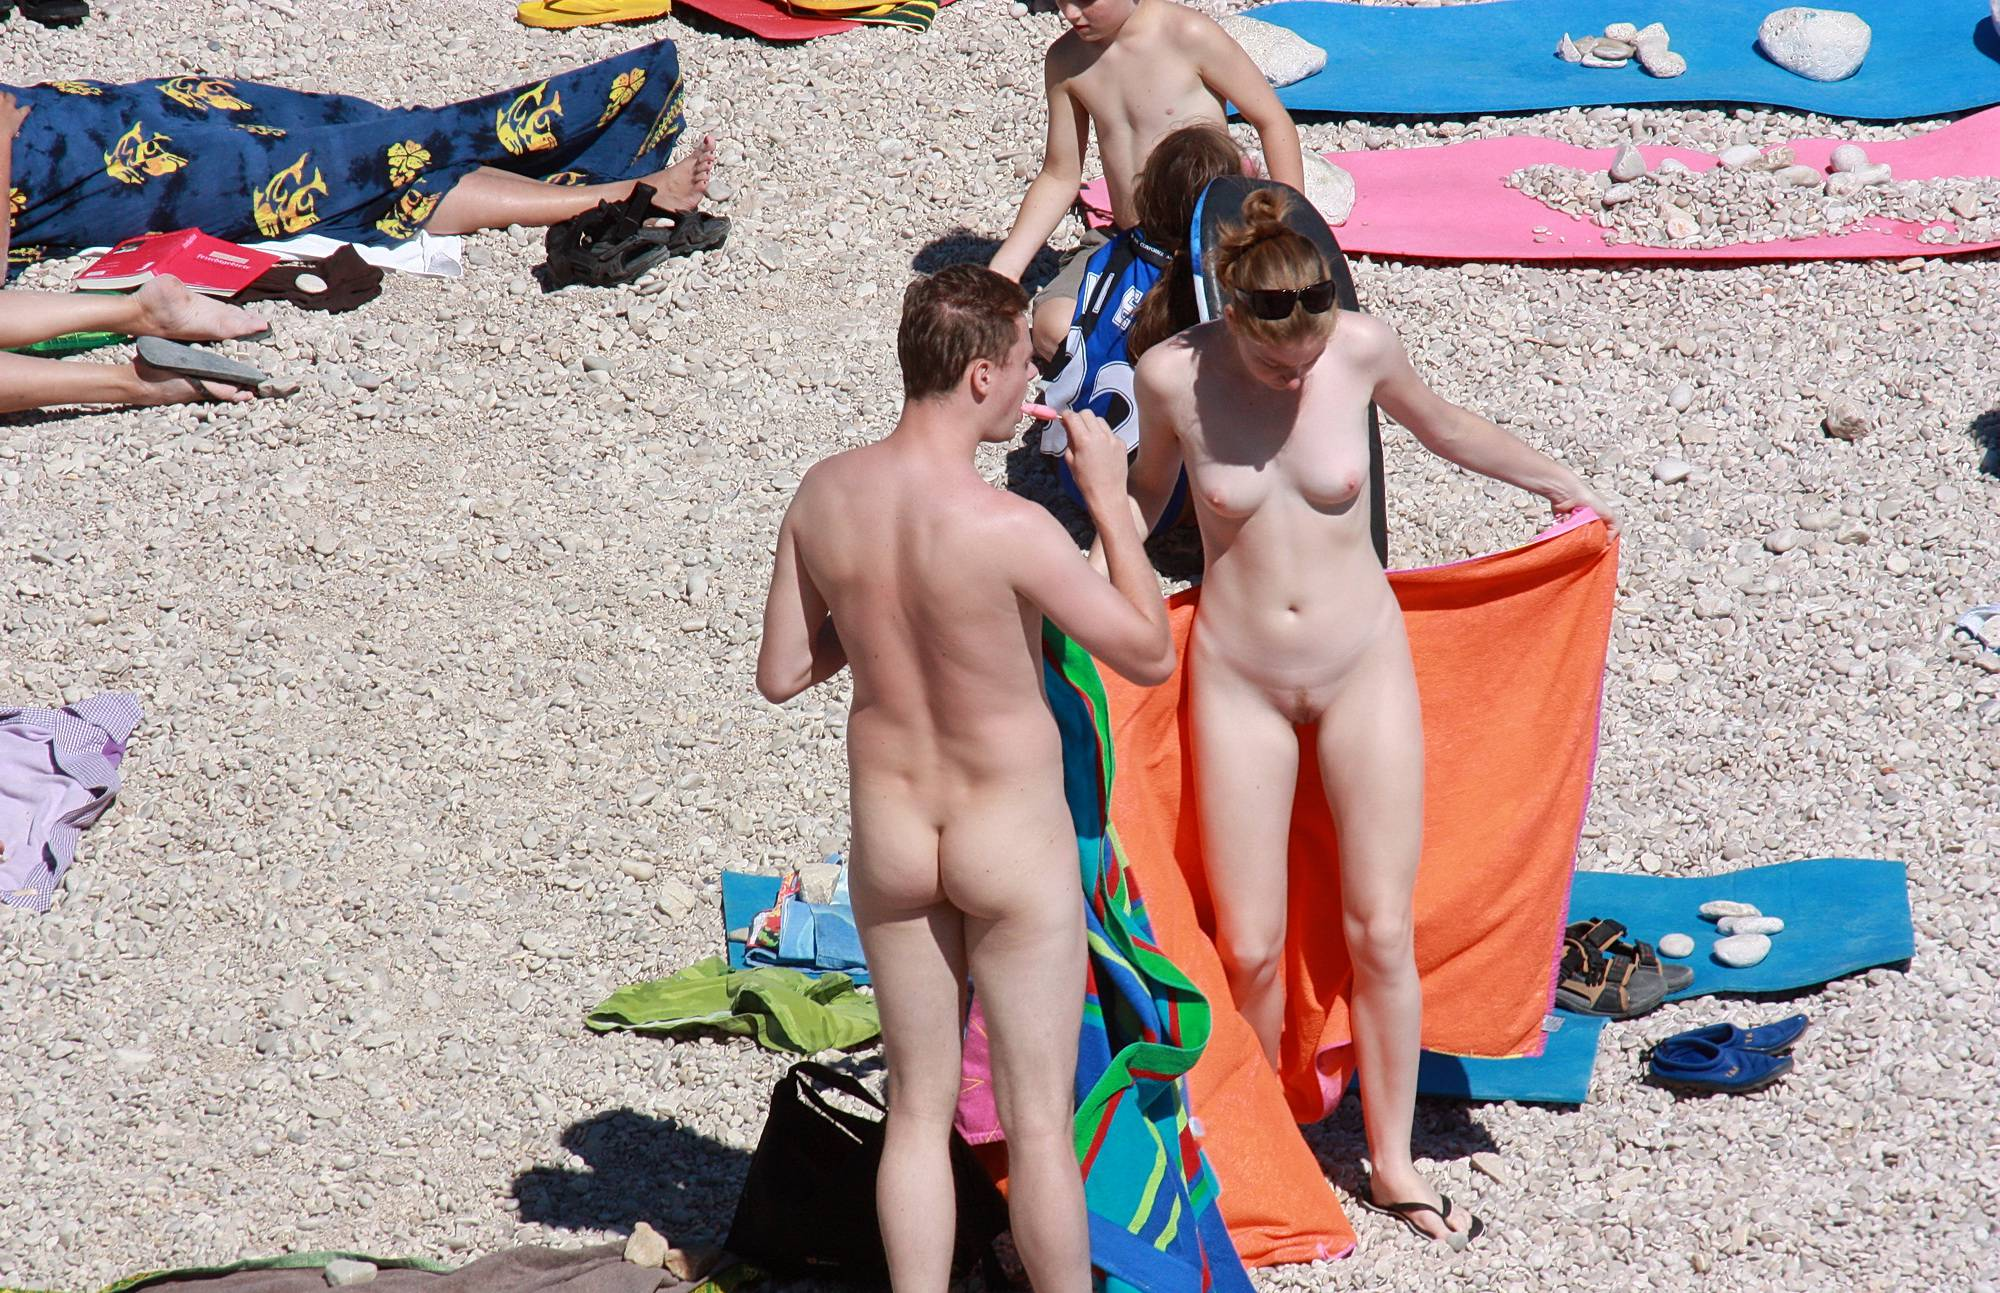 Pure Nudism Pics-Beachy Keen Summer Day - 3